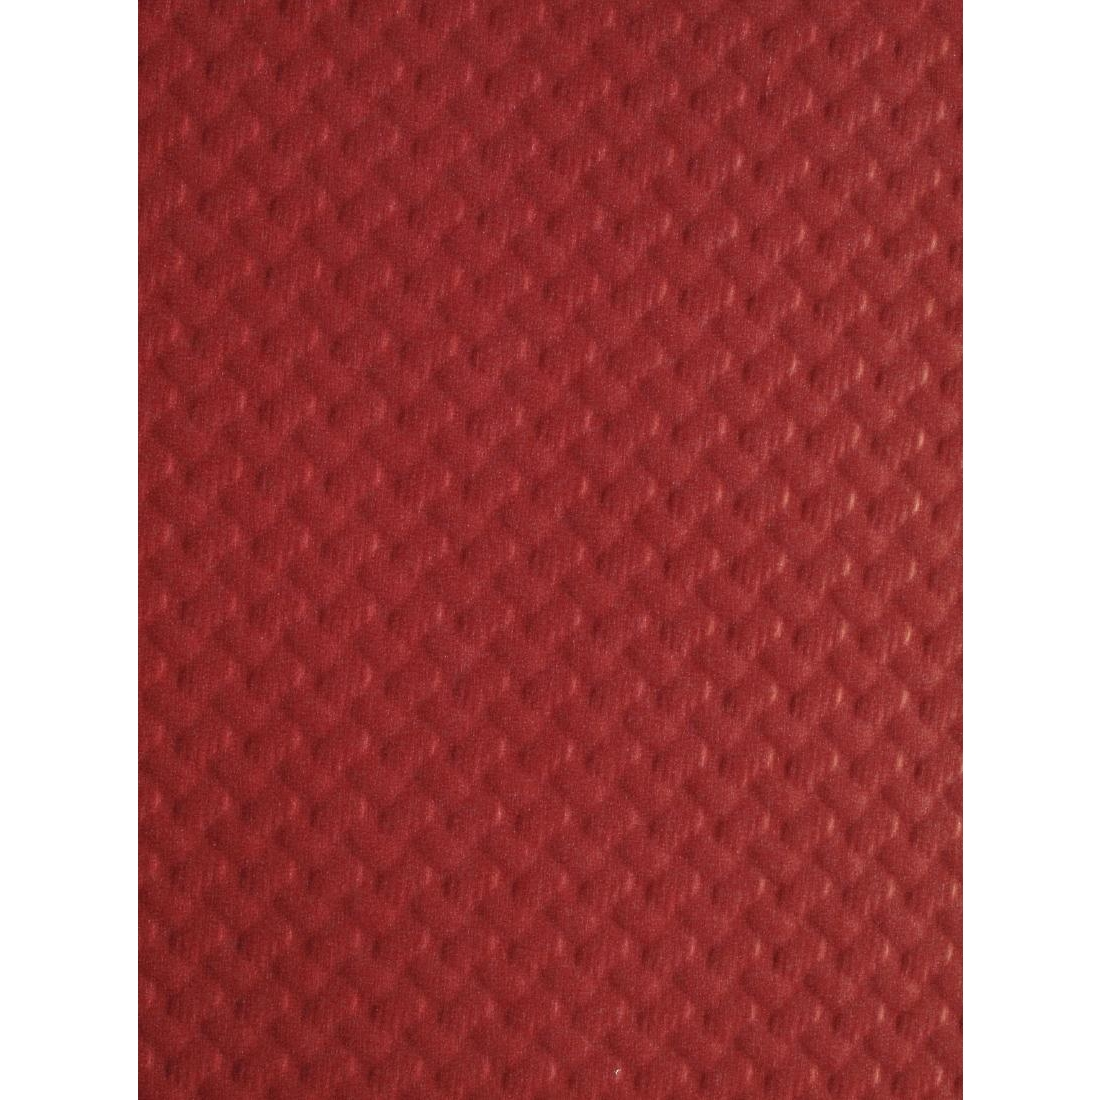 Sets de table en papier bordeaux 300 x 400mm par 500